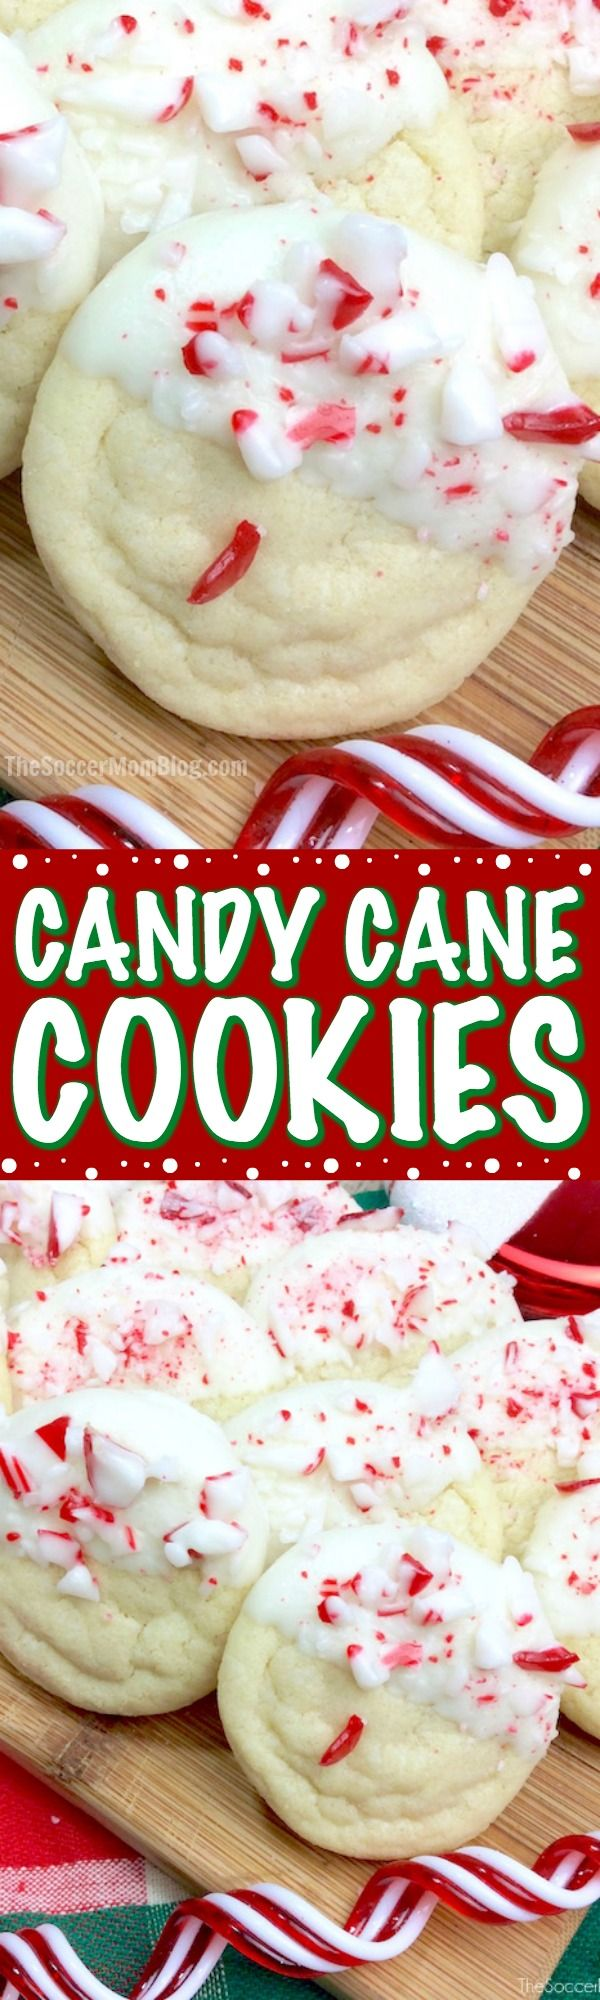 Peppermint sugar cookies dipped in white chocolate and dusted with candy cane pieces